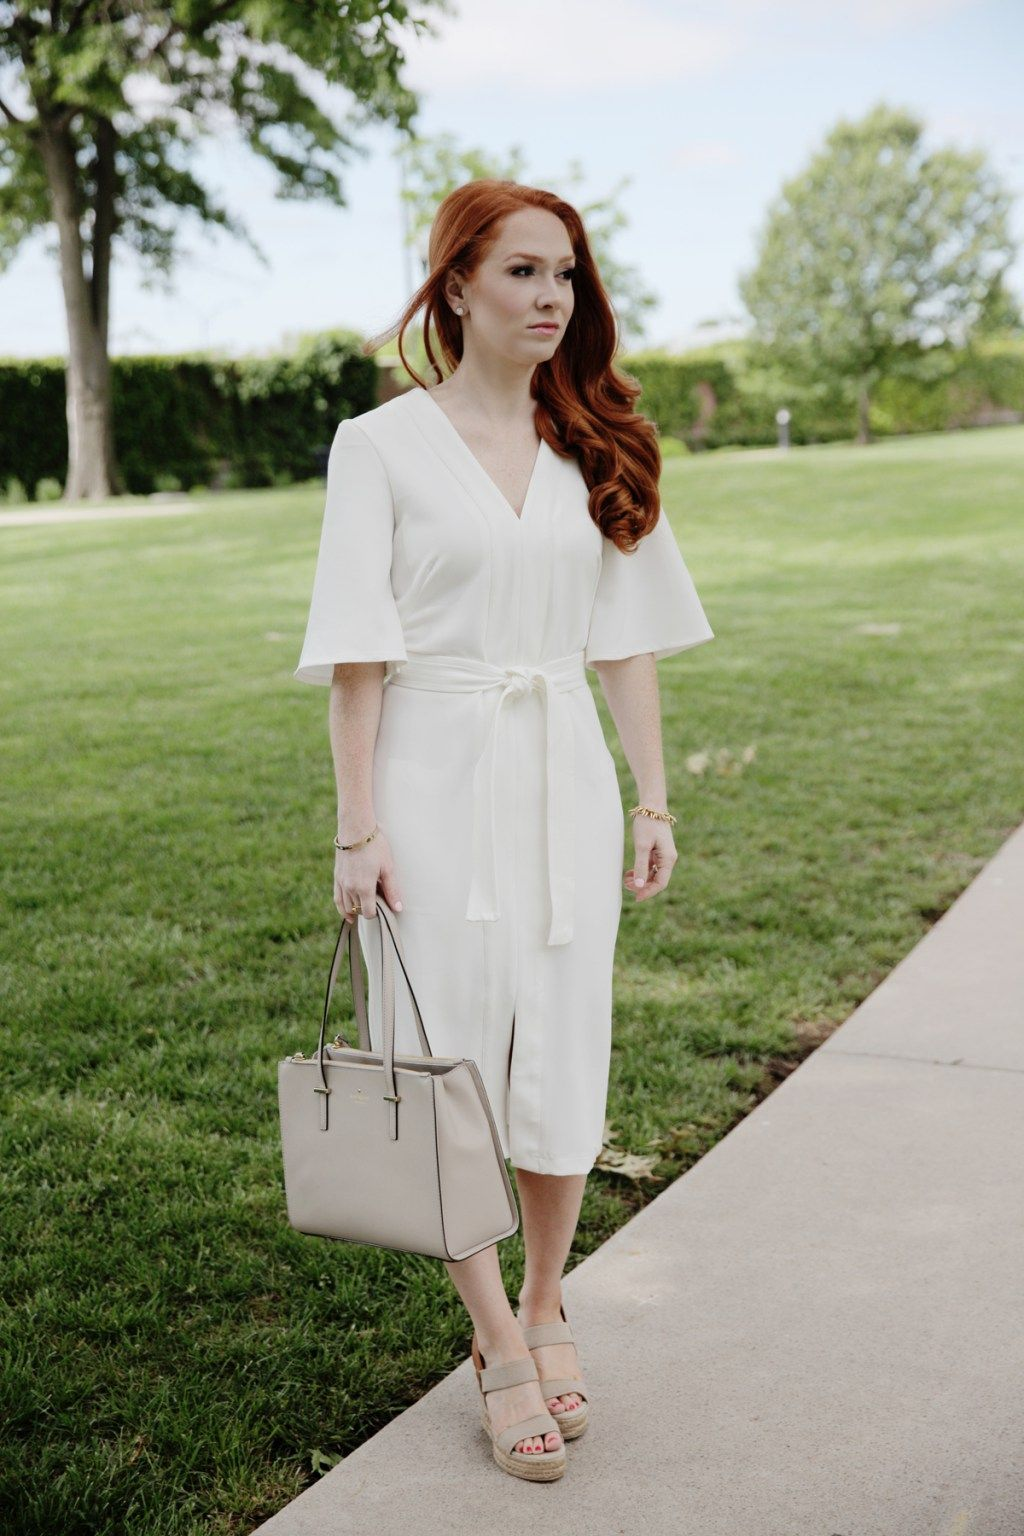 Styleassisted by adriele dixon a life and style blog white dress